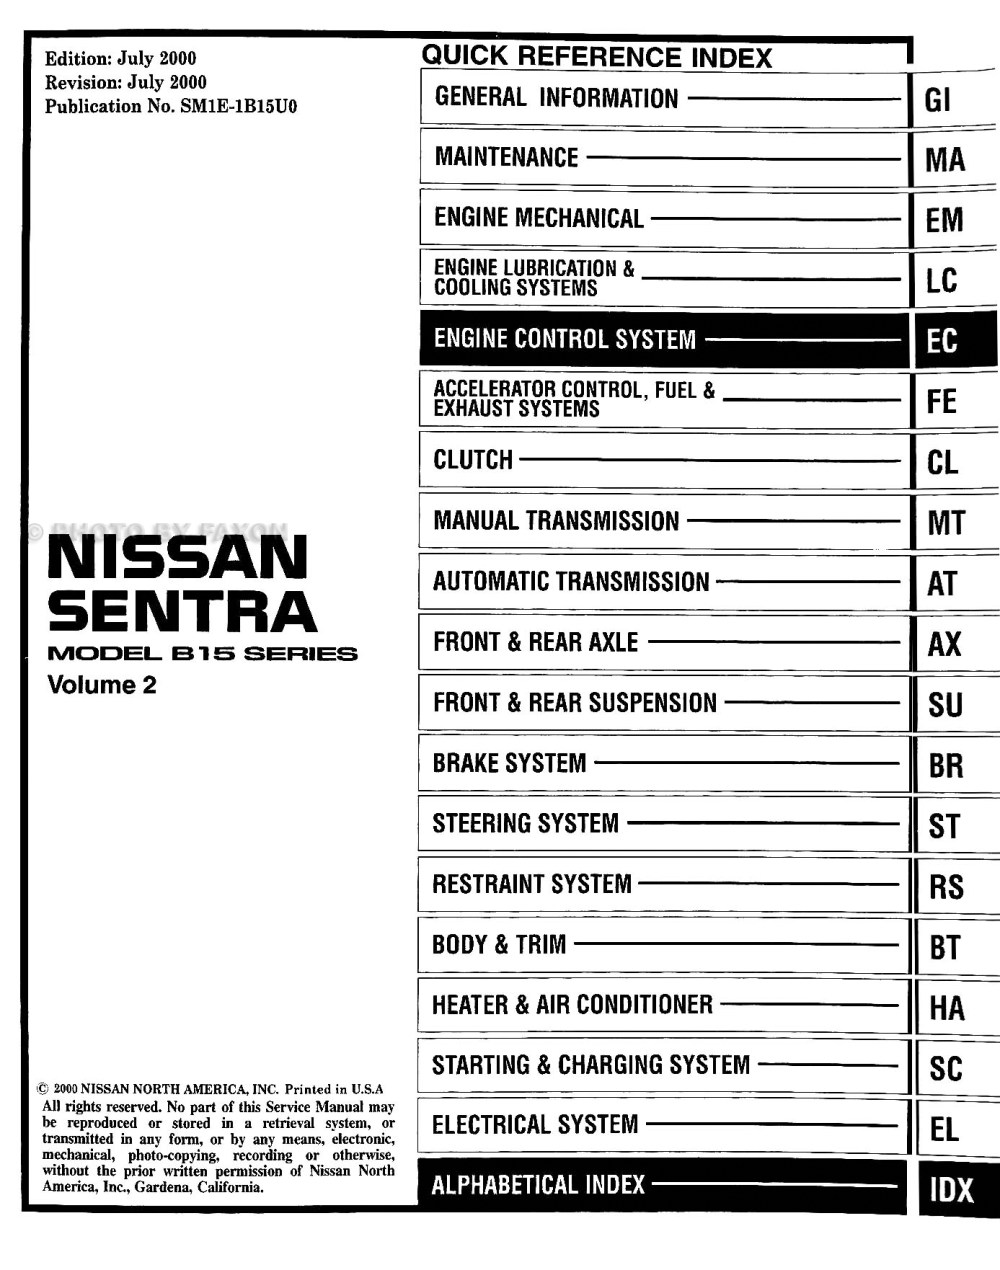 medium resolution of wrg 9829 fuse panel diagram for 1992 nissan sentra 92 nissan sentra fuse box diagram 92 nissan sentra fuse box